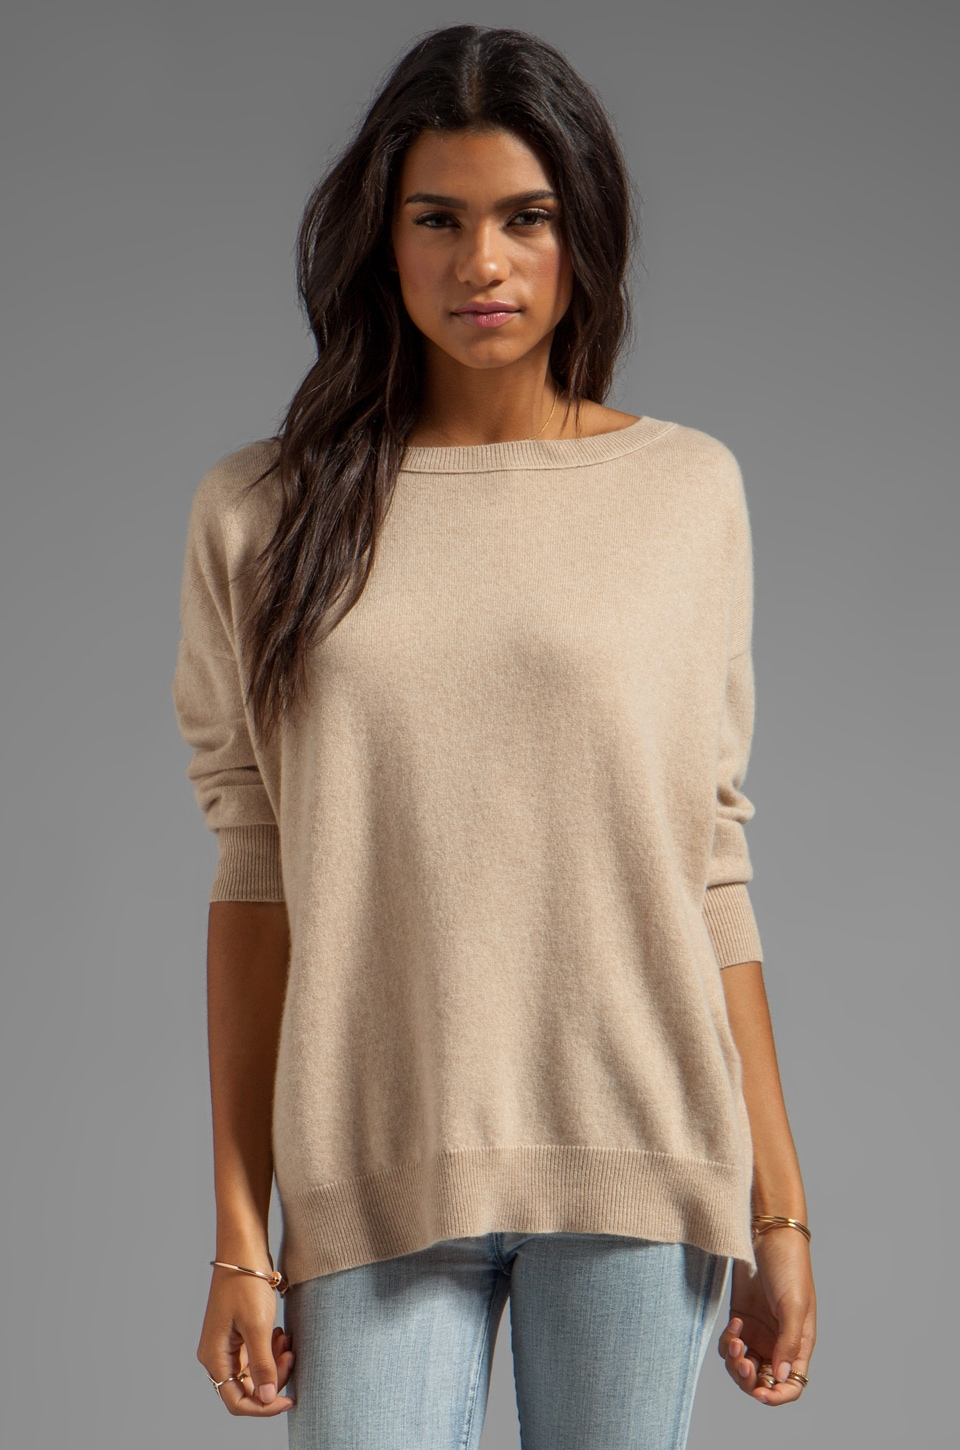 Inhabit Cashmere Weekend Sweater in Camel